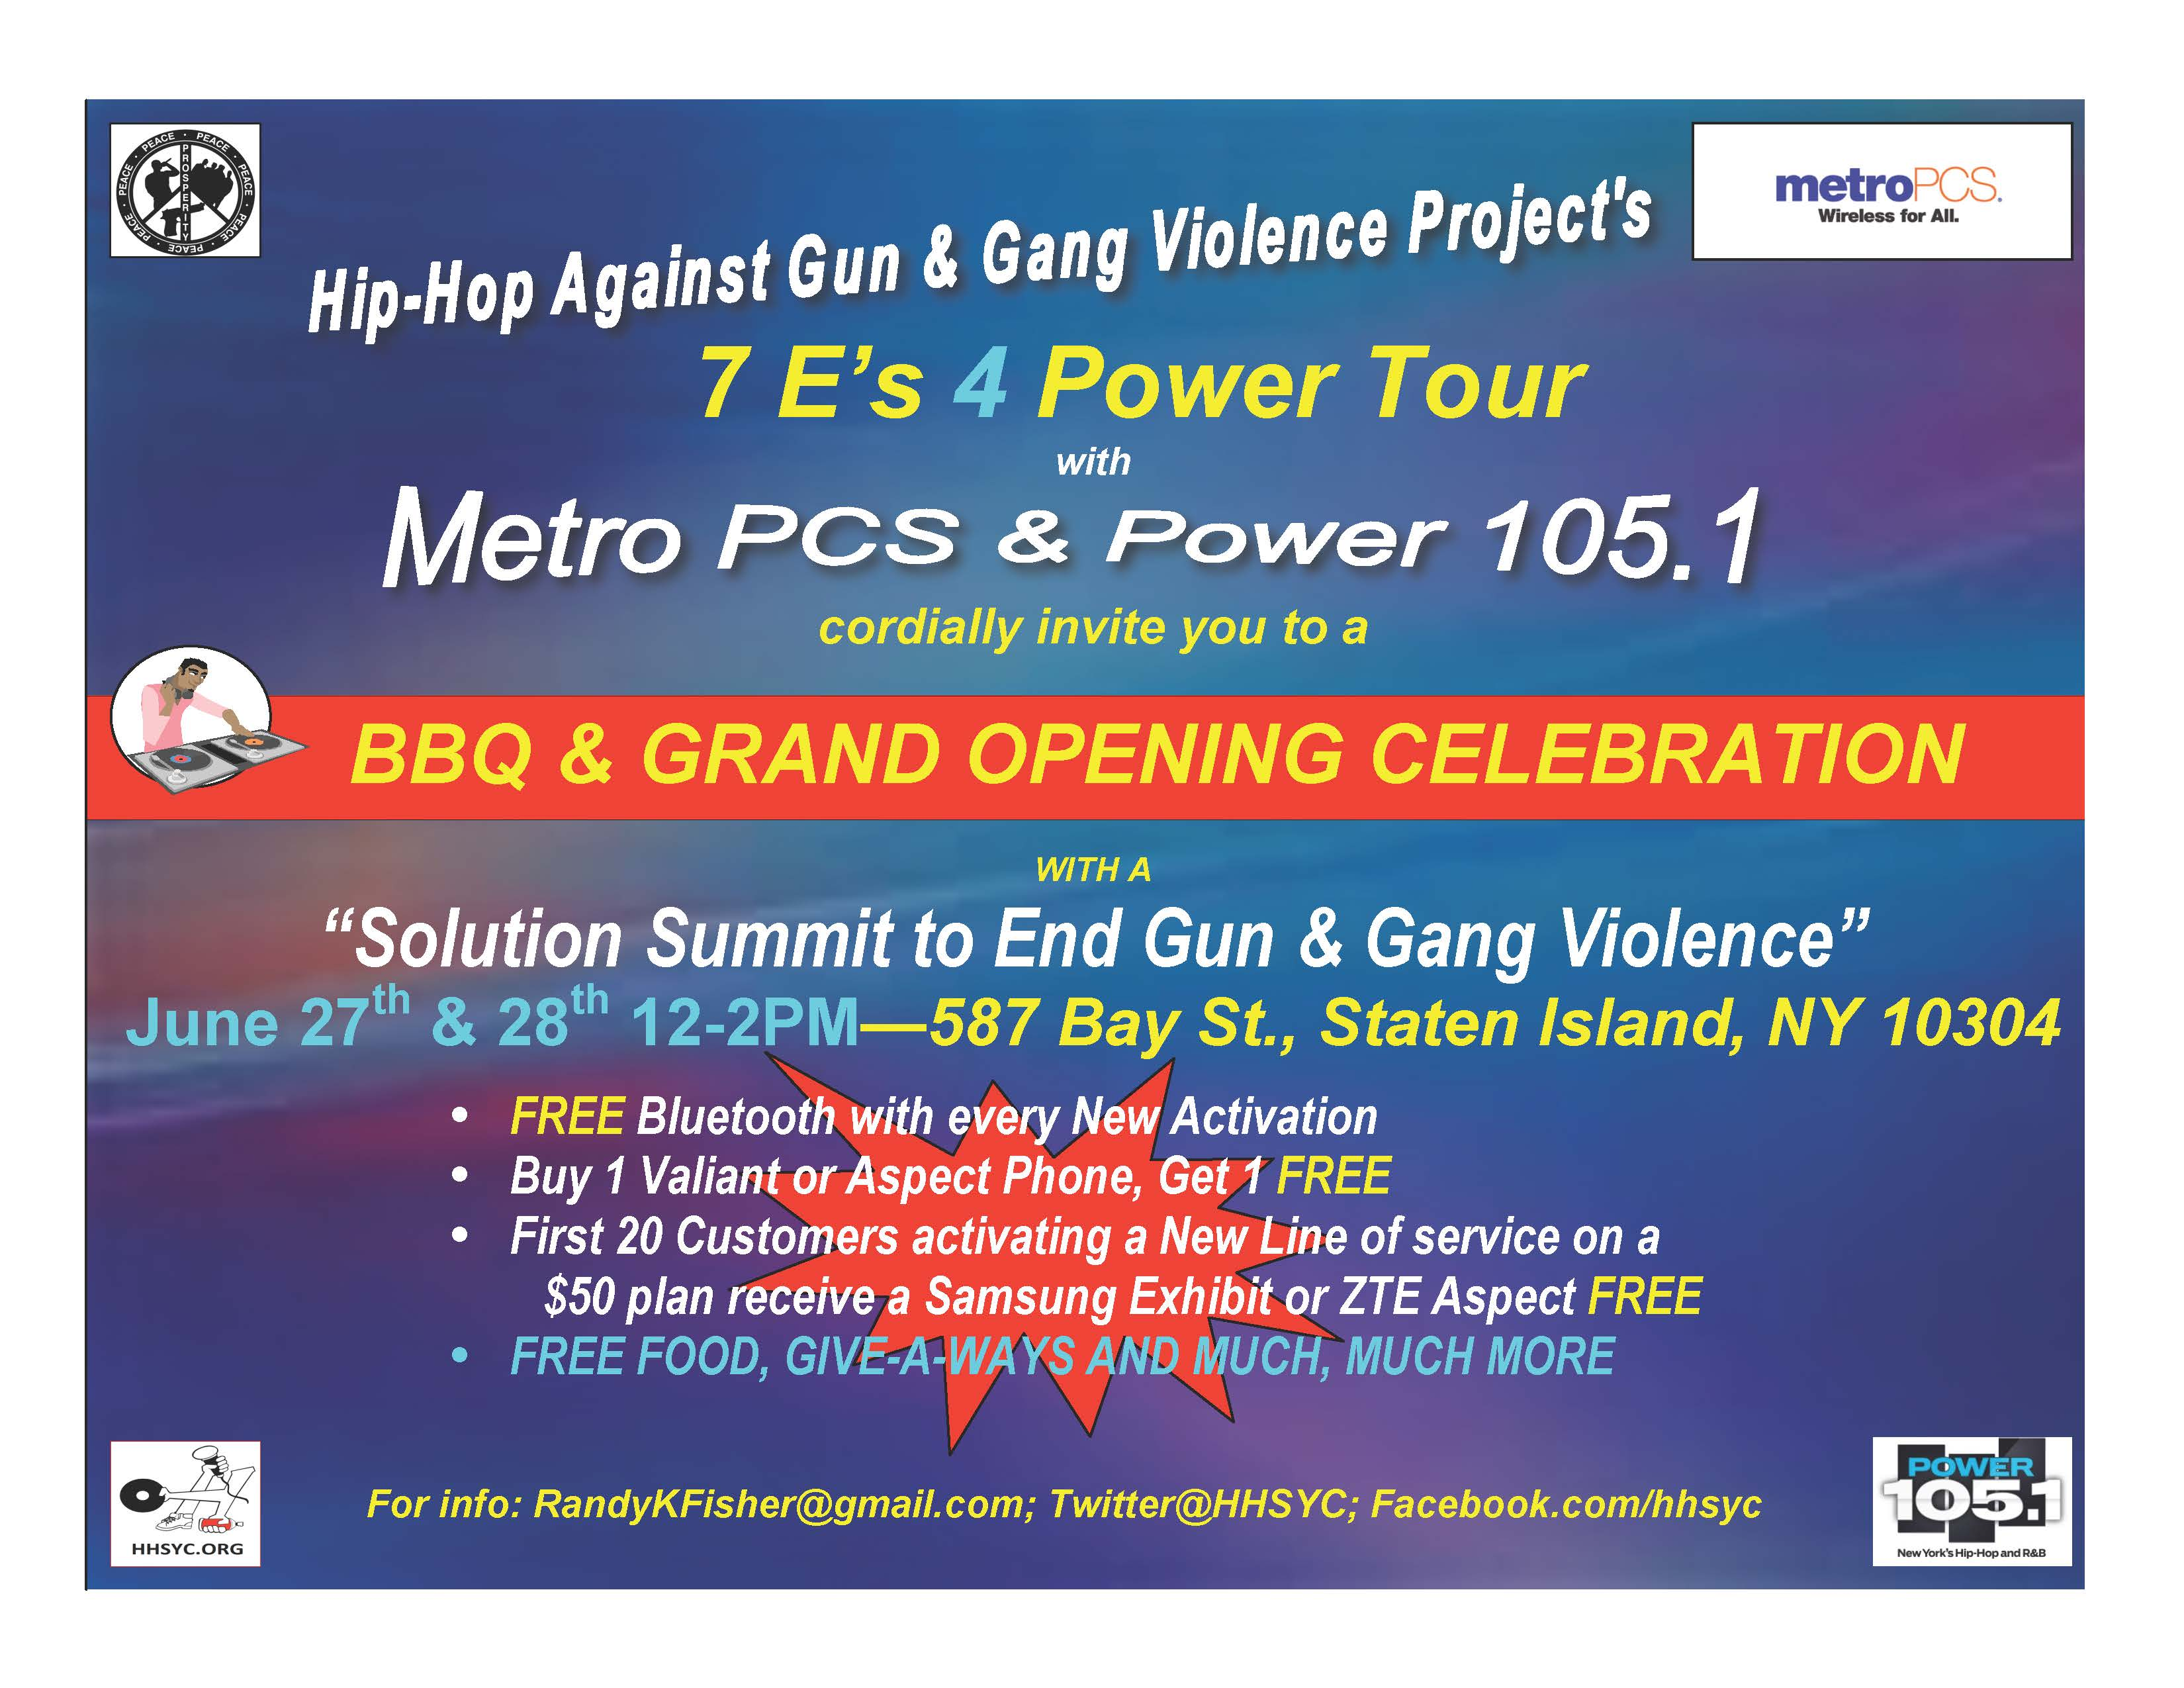 METROPCS Supports Project To End Gun And Gang Violence In NYC And NJ